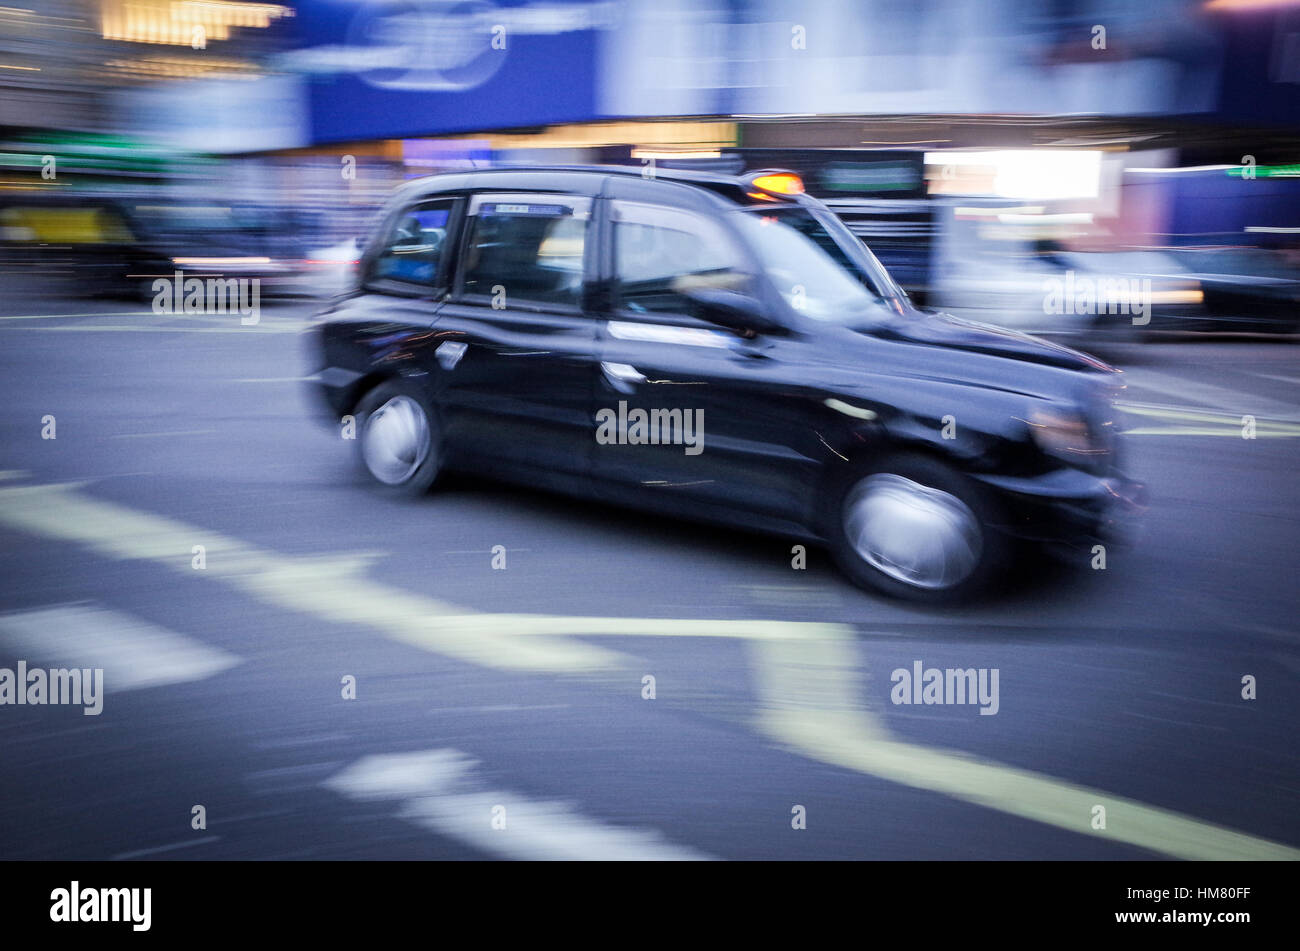 A London taxi in Piccadilly Circus - Motion Blur - Stock Image